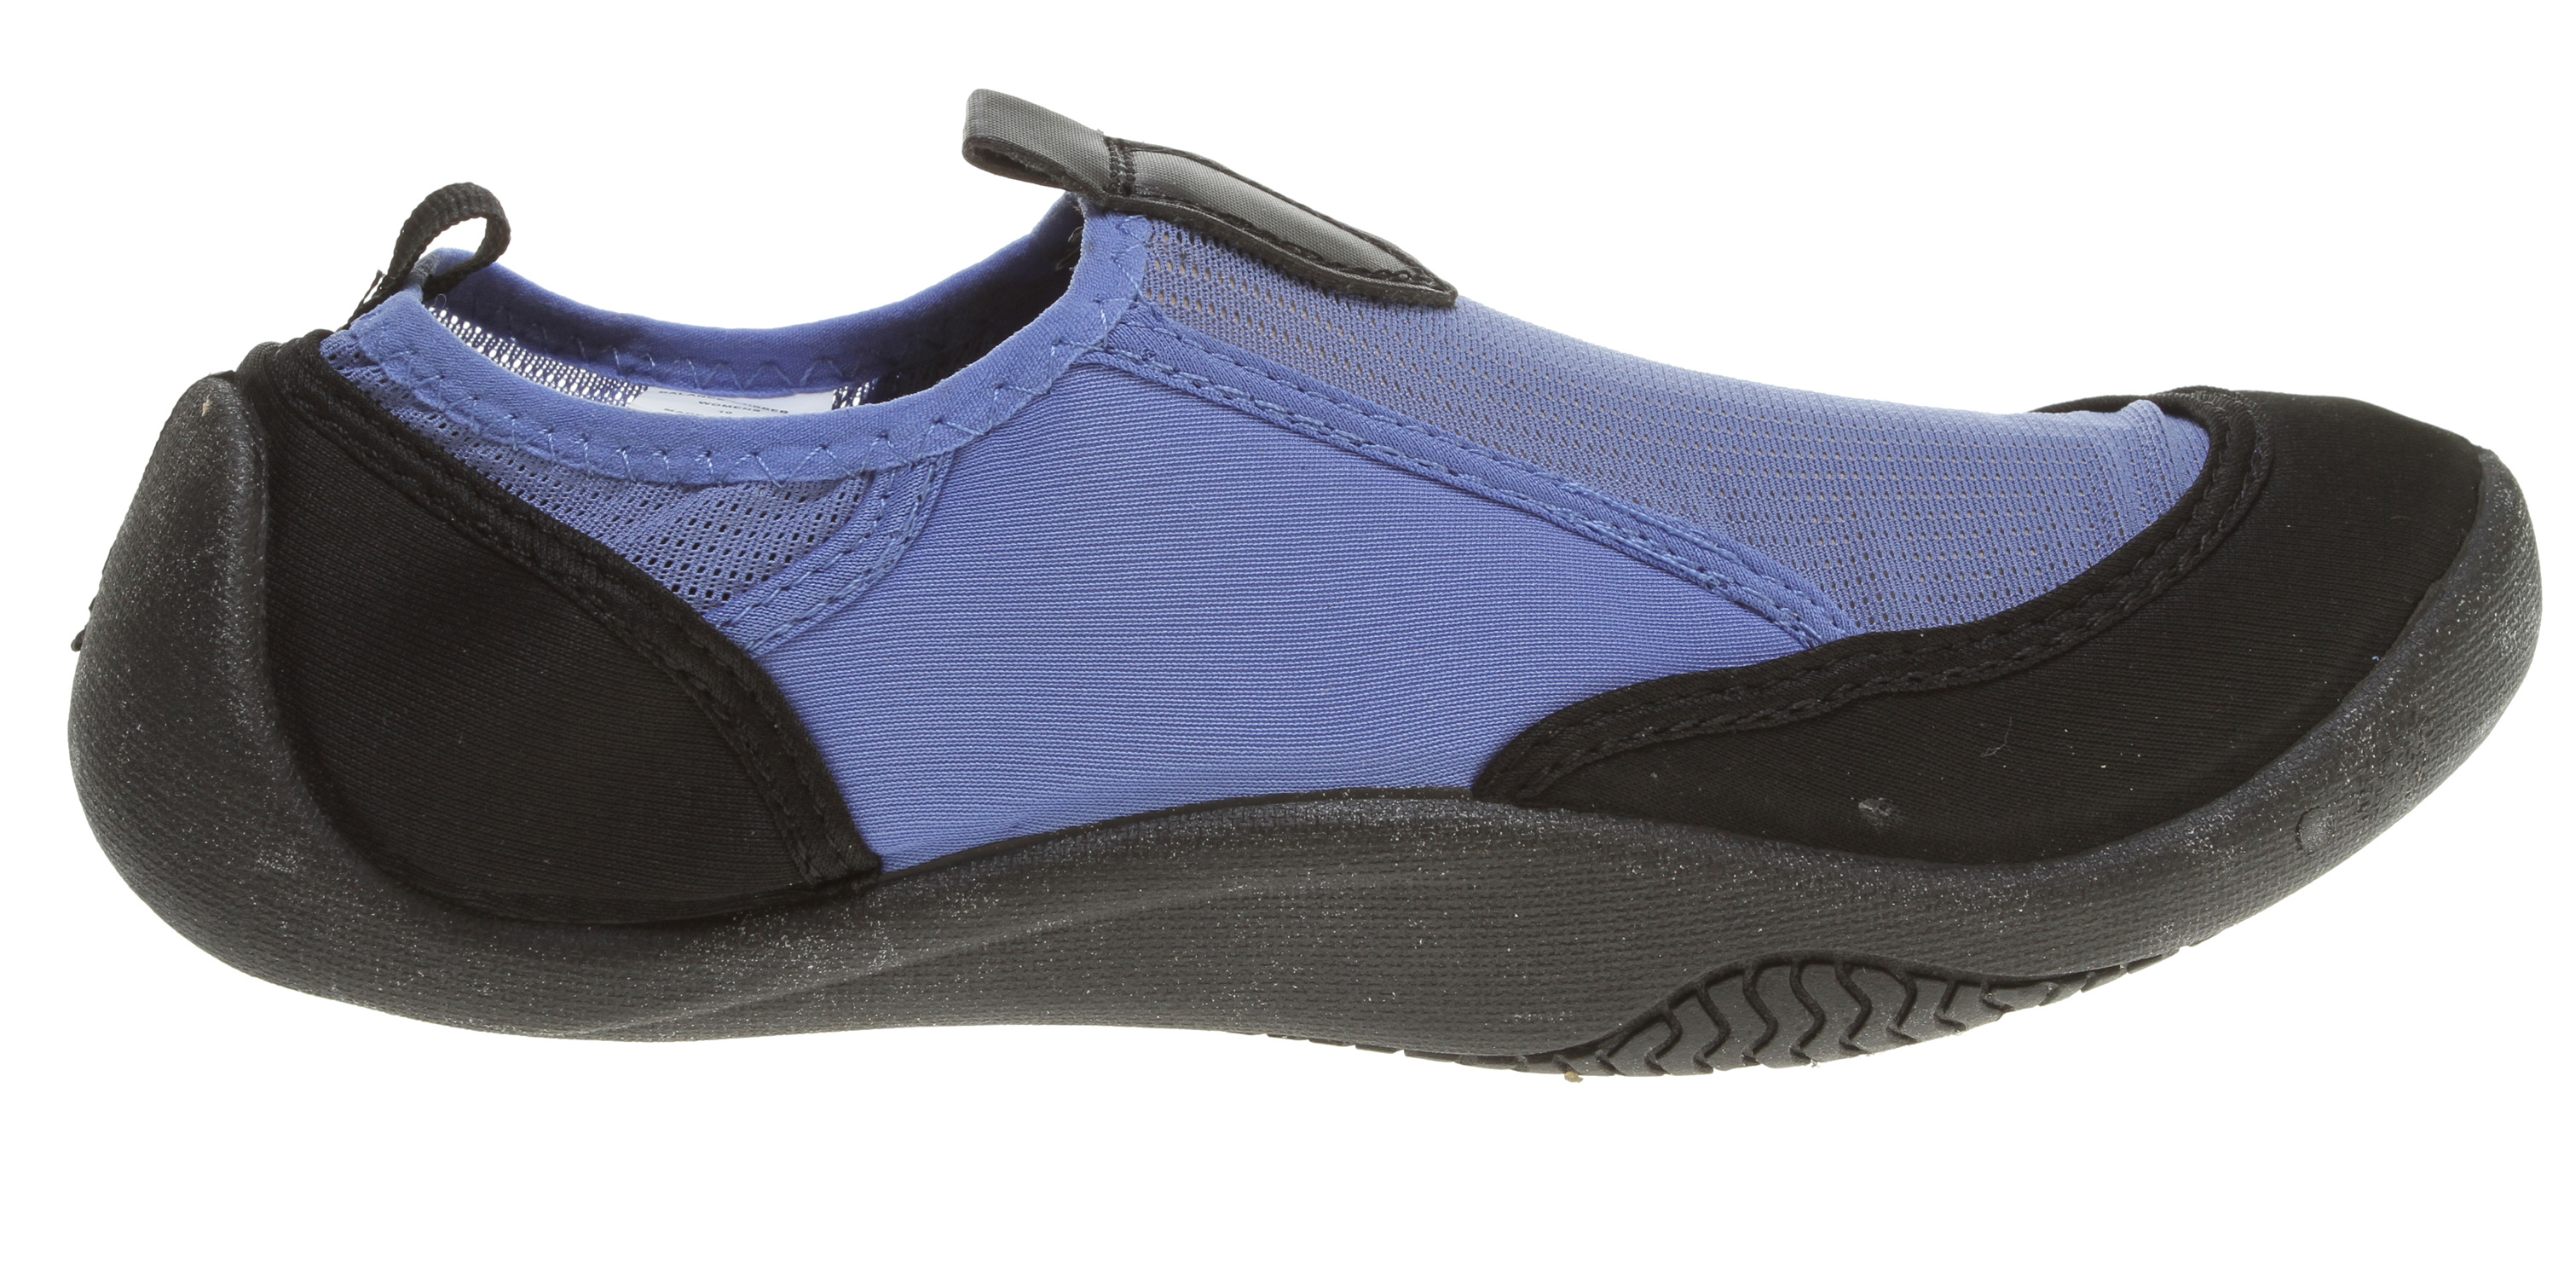 Inexpensive water shoes with a slip on fit. Produced with innovative methods using recycled materials for high quality footwear. Rafters also takes great care the environment. Rafters are durable, high-quality footwear at an affordable price.Key Features of the Rafters Orlando Water Shoes: Stretchy nylon fabric upper Rubber sole Available in whole sizes only, half sizes please order the next size up - $11.95